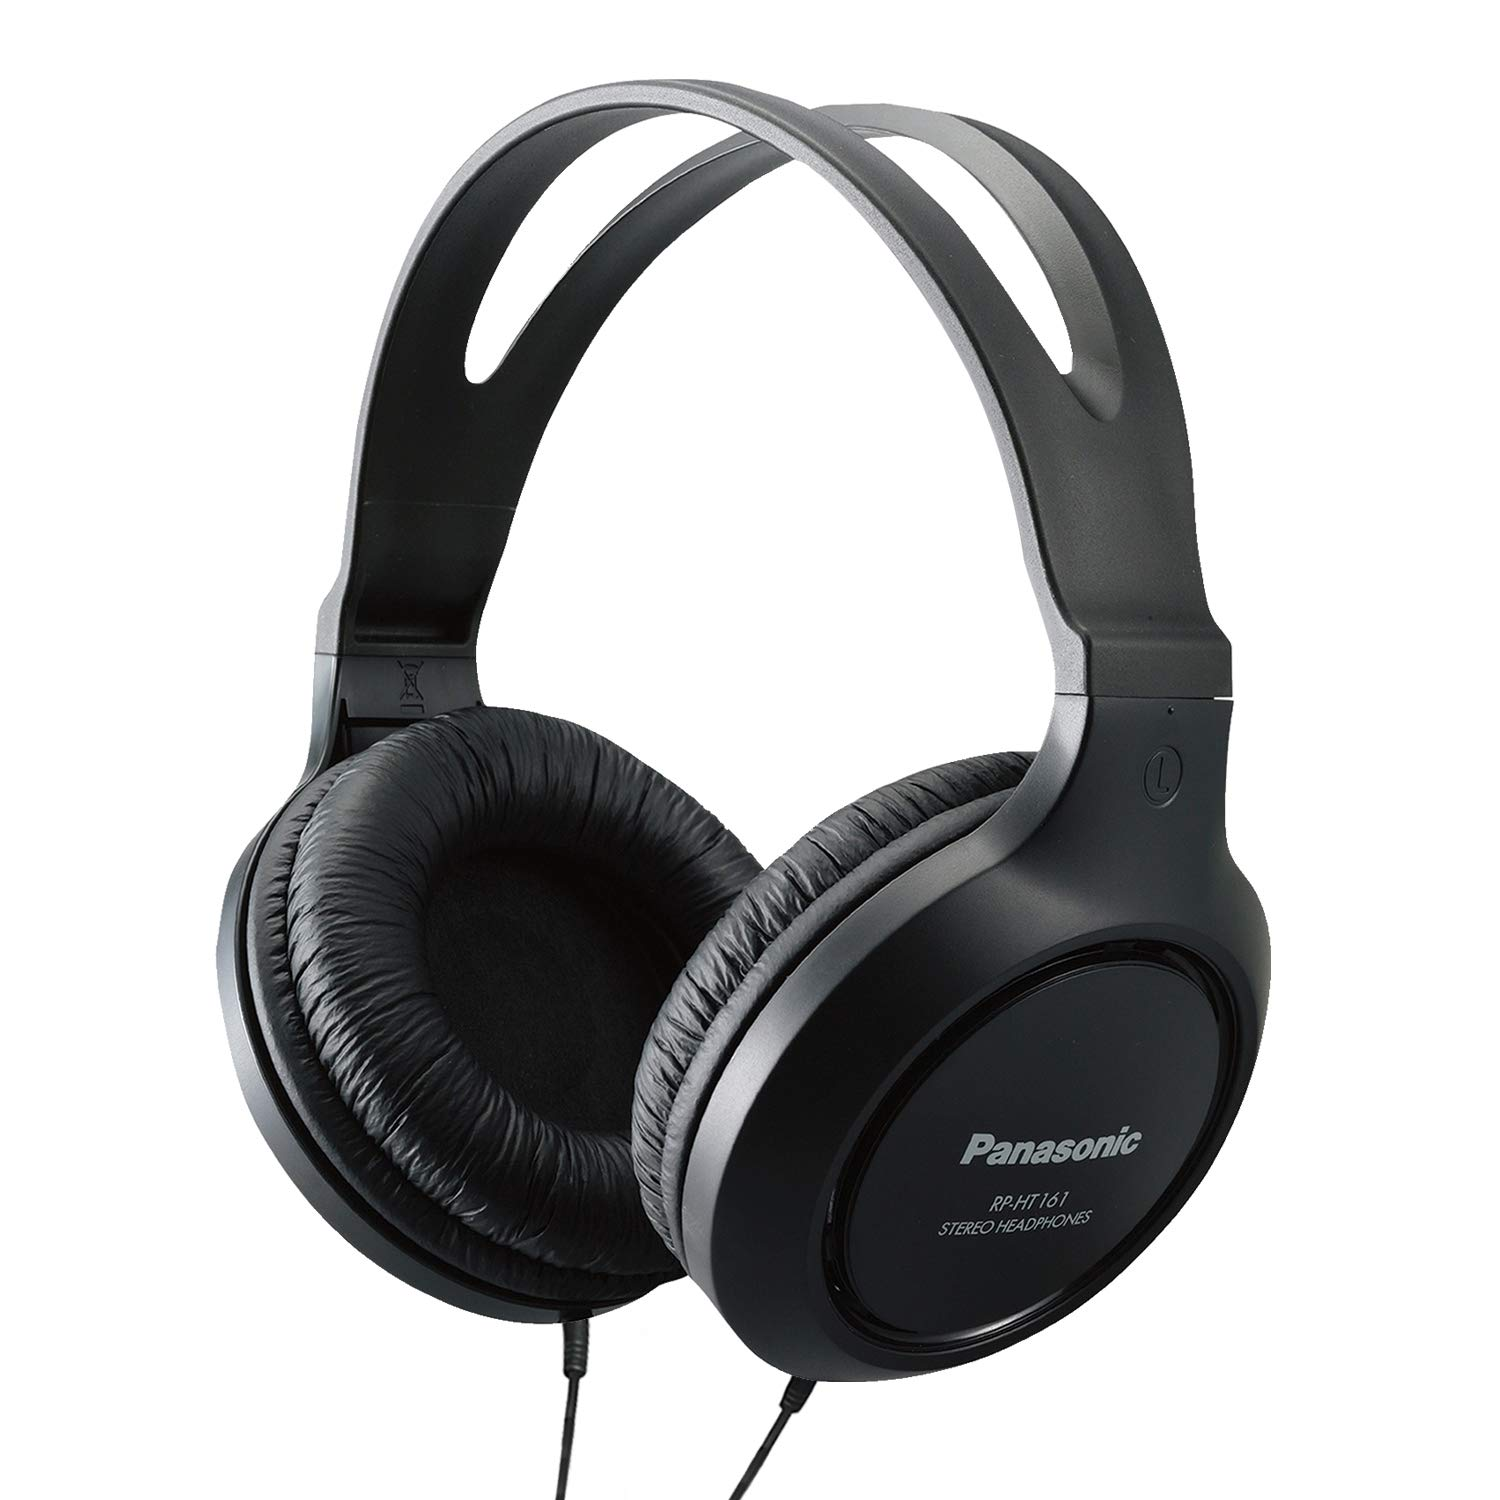 Auriculares Panasonic Rp-ht161-k Full-sized Over-the-ear Liviano Long-corded (negro)